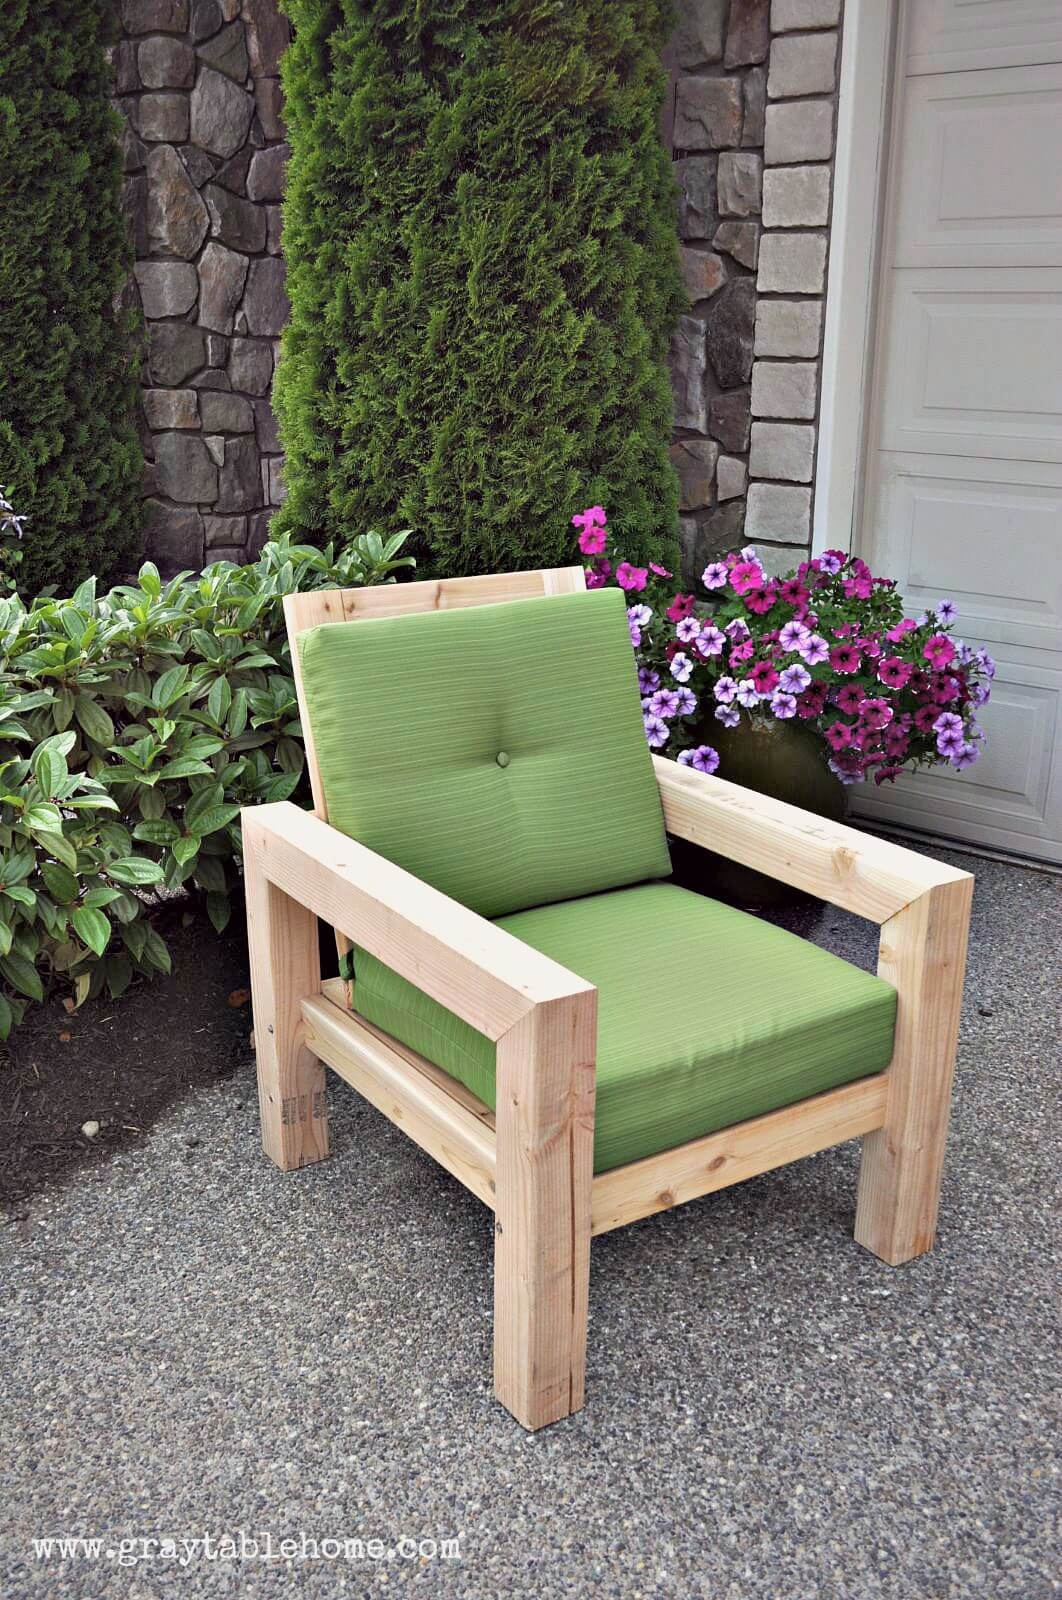 29 Best DIY Outdoor Furniture Projects (Ideas and Designs ... on Diy Garden Patio Ideas id=41062